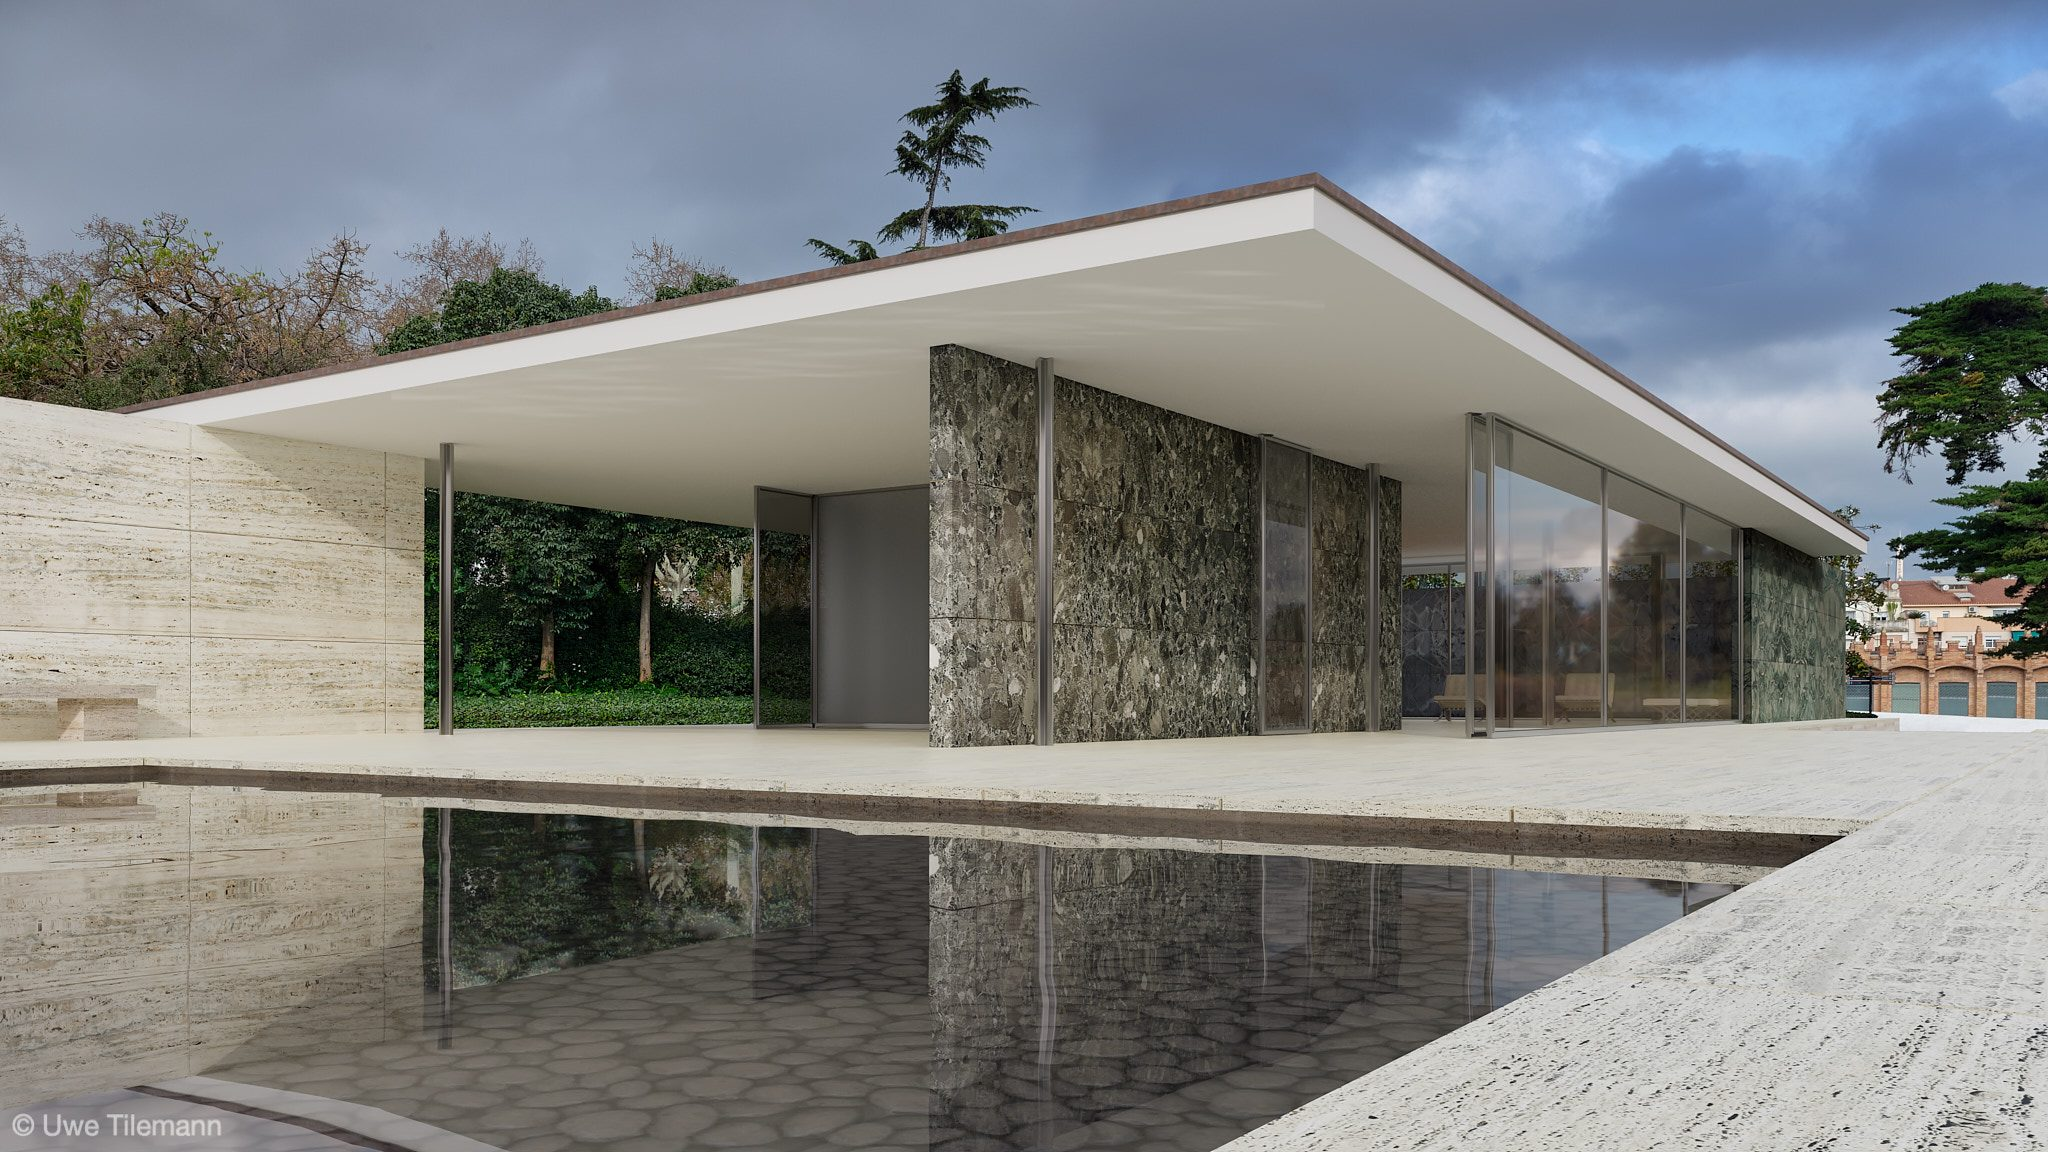 Rendering of Barcelona Pavillon - PBR materials created with PBRtist based on photos took on location.